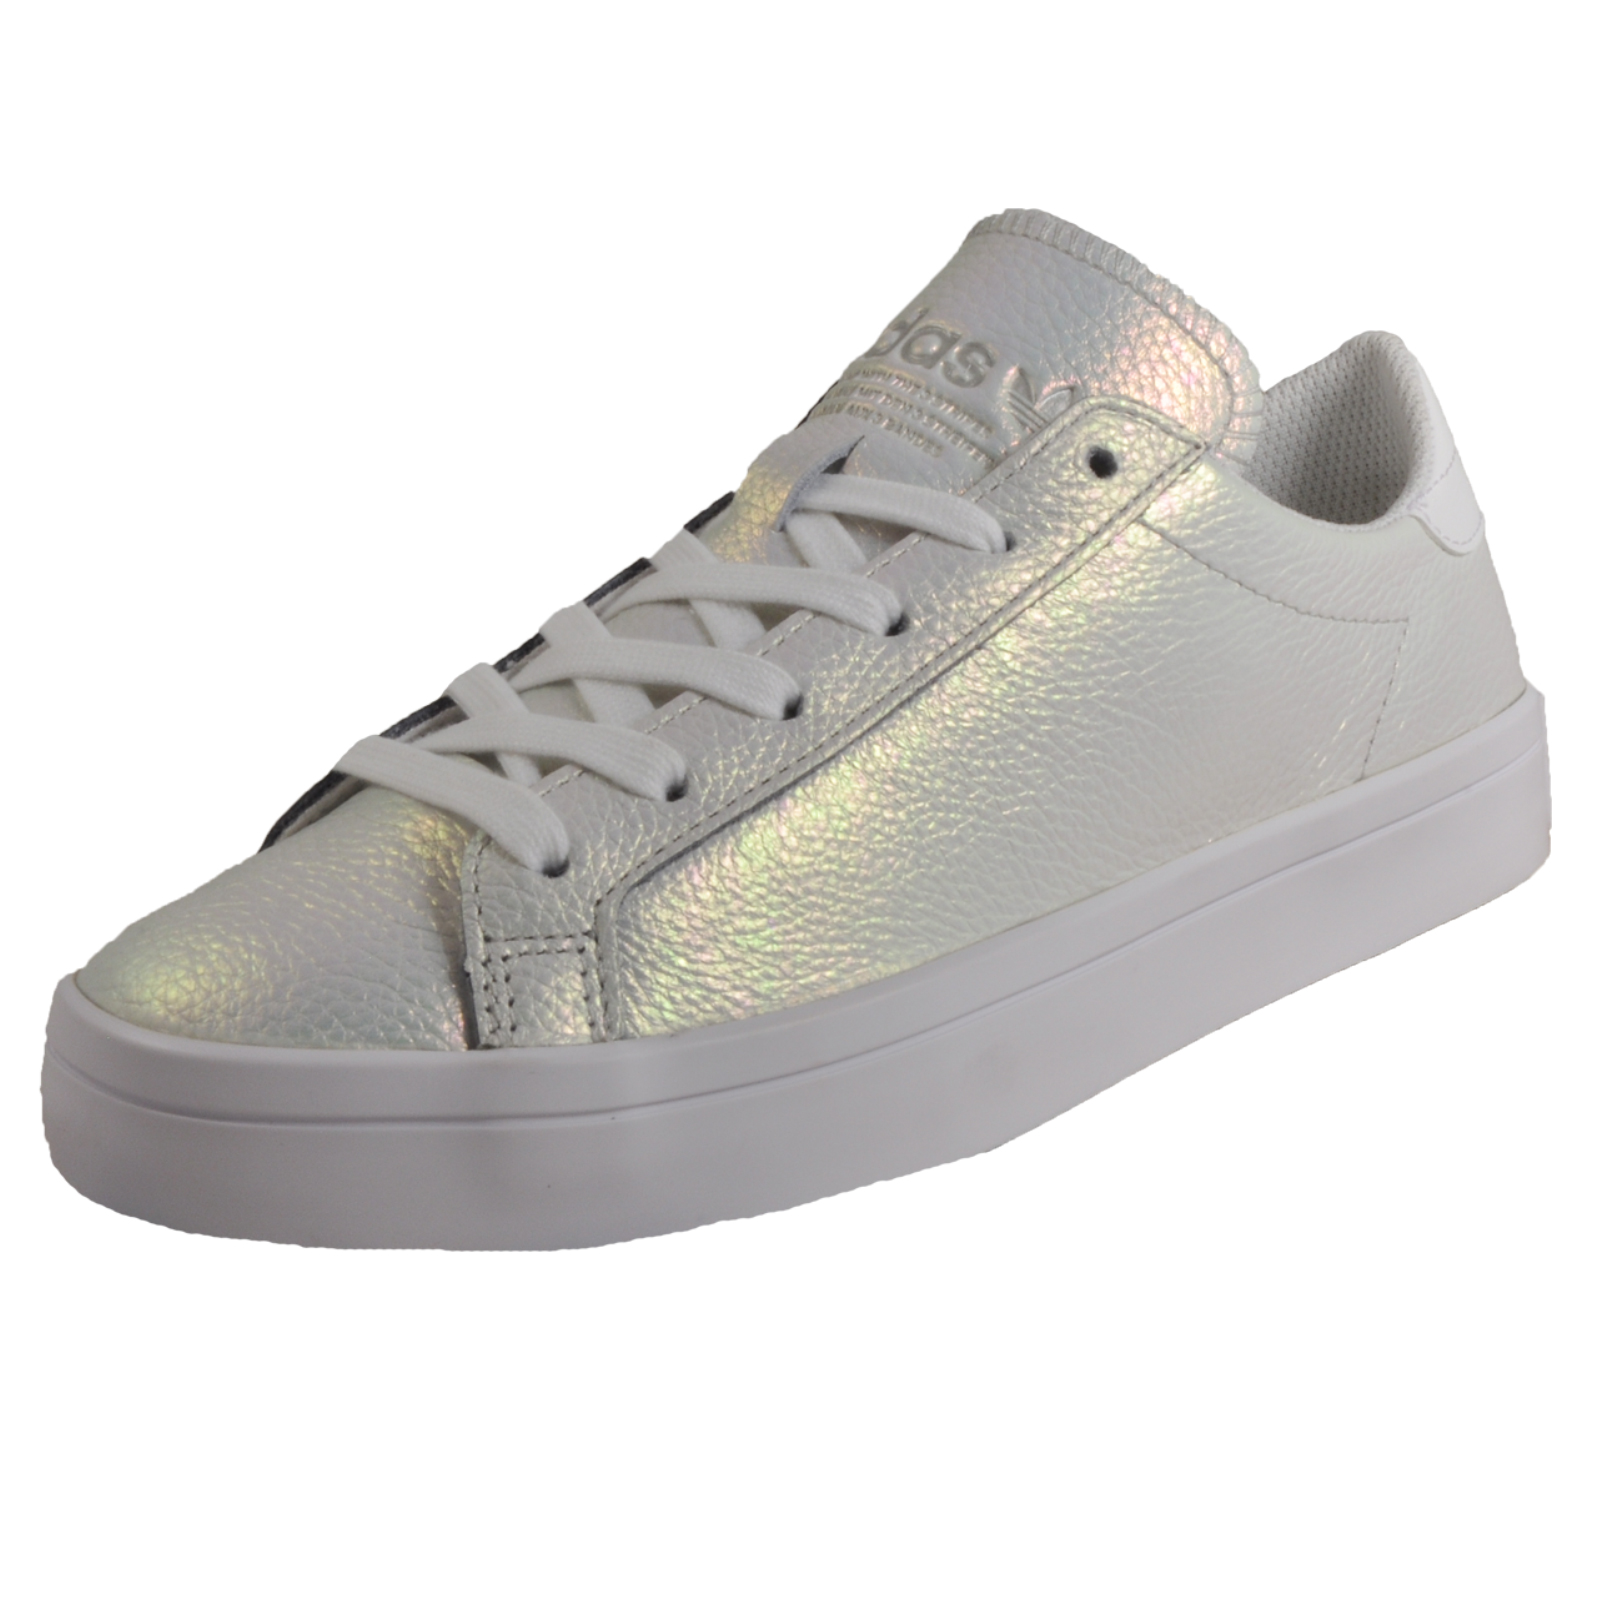 buy popular a585f 2190f Details about Adidas Originals Court Vantage Womens Fashion Retro Trainers  Pearlescent White